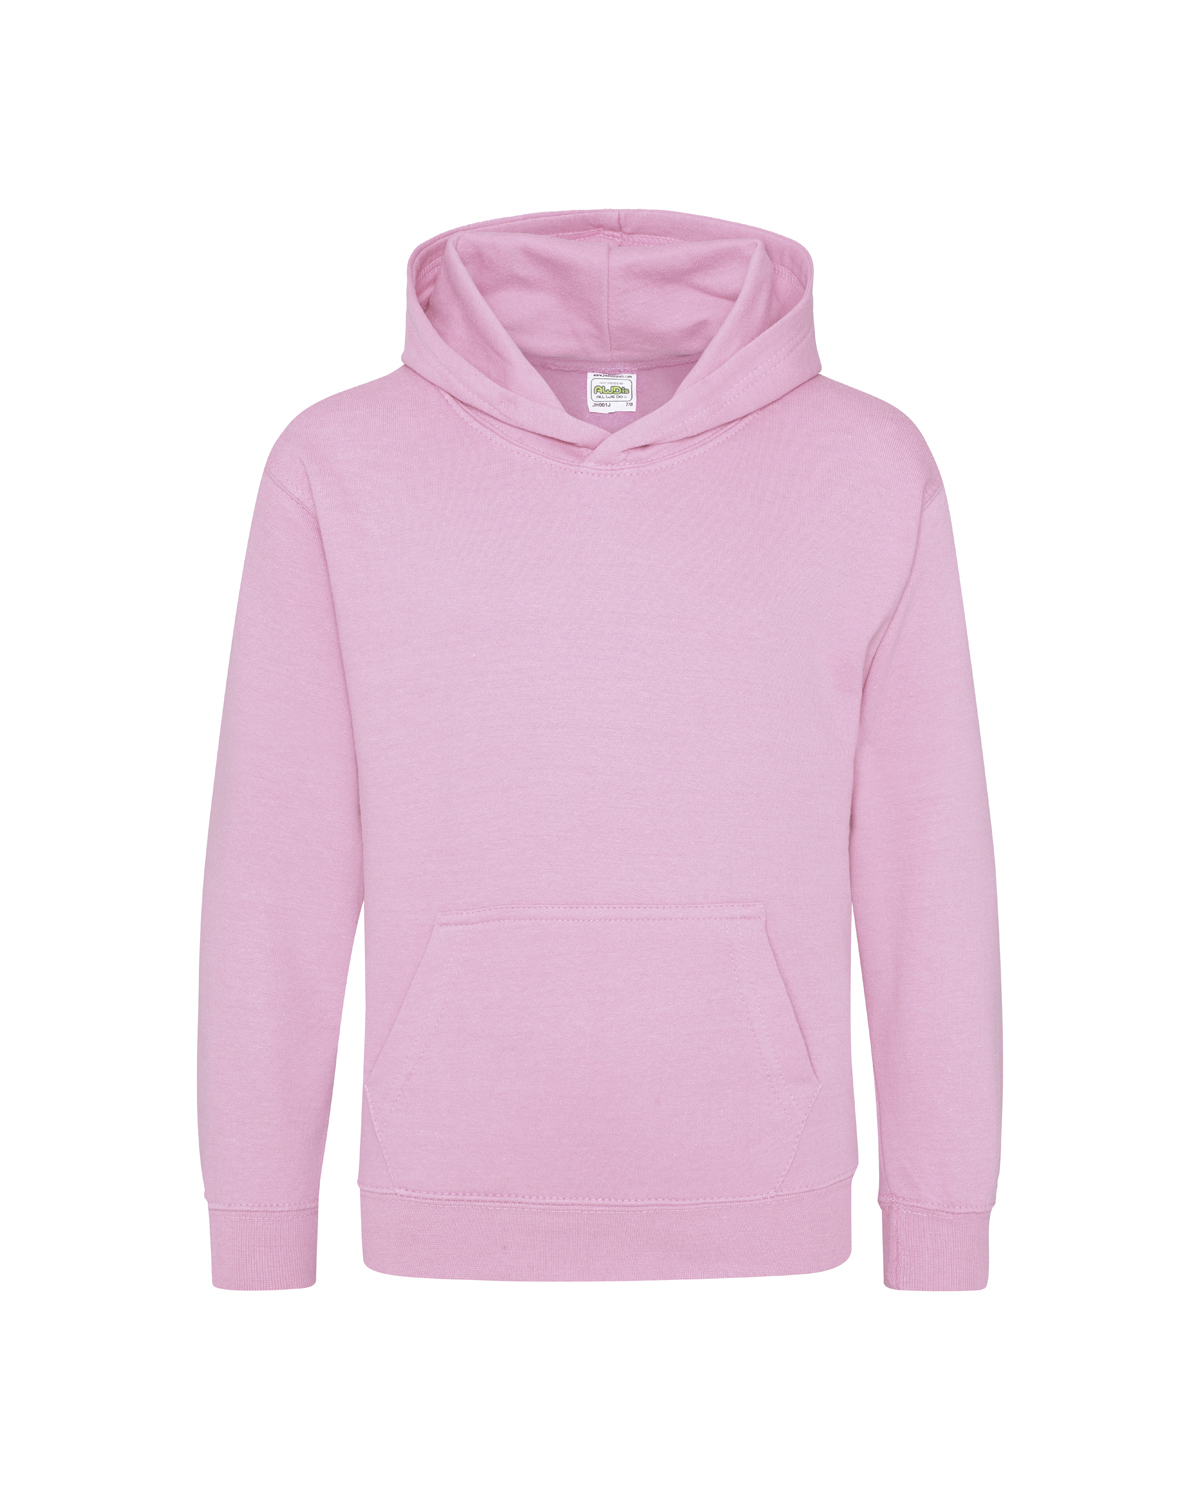 Youth 80/20 Midweight College Hooded Sweatshirt